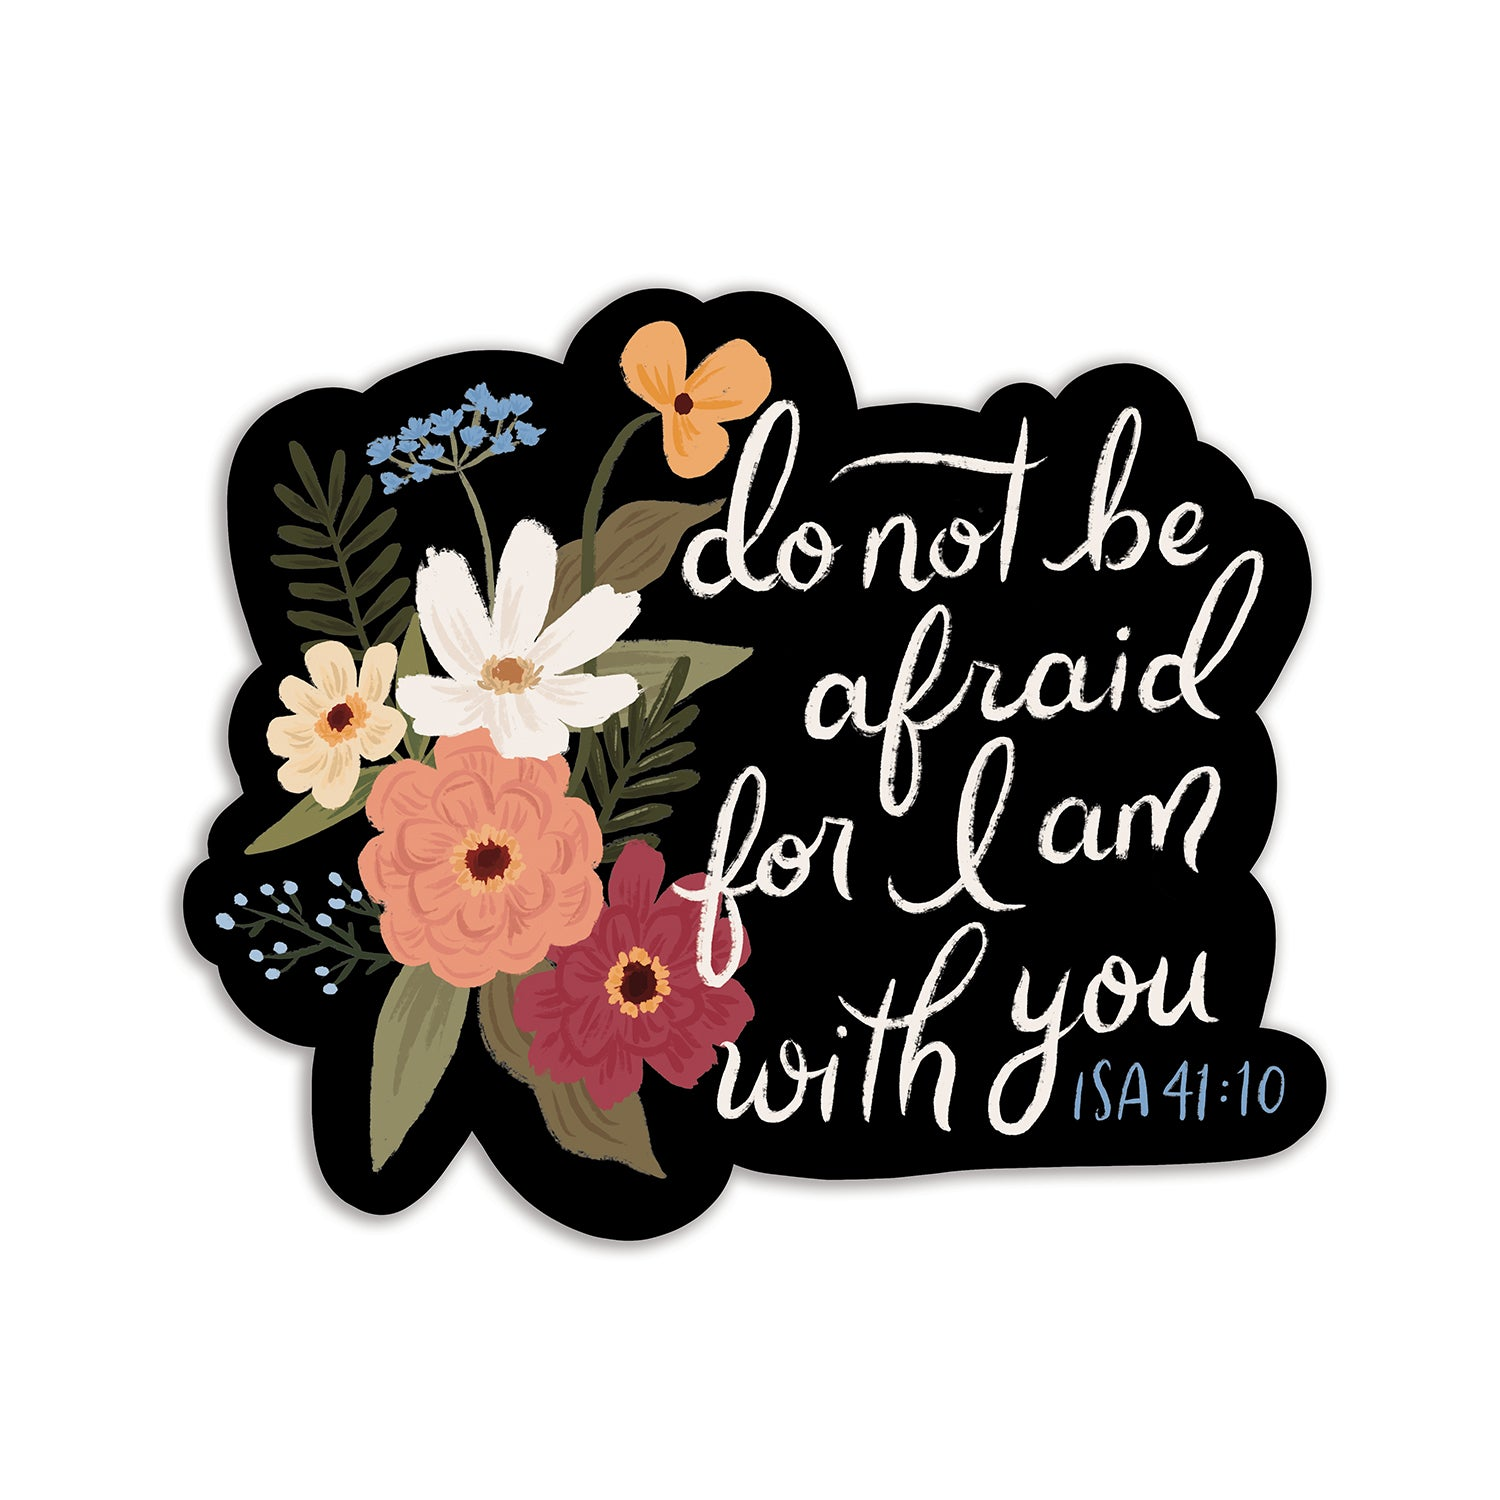 Vinyl Sticker - Do Not Be Afraid For I Am With You - Isaiah 41:10